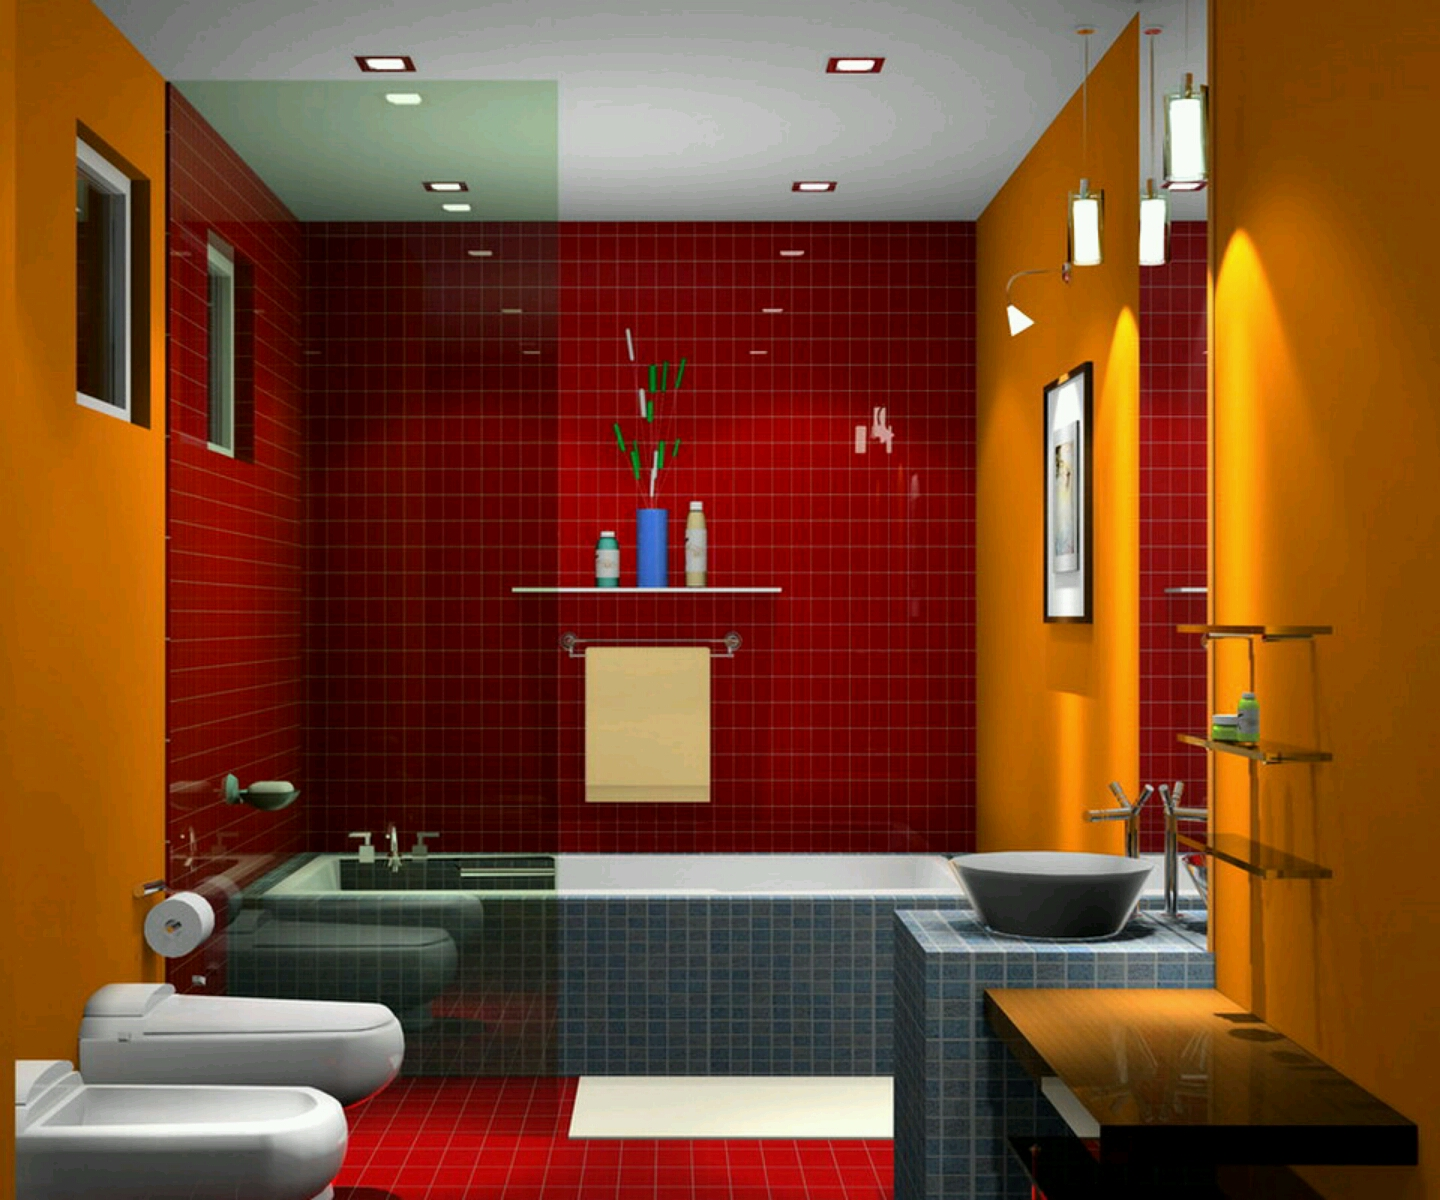 New home designs latest luxury bathrooms designs ideas for Luxury bathroom ideas uk